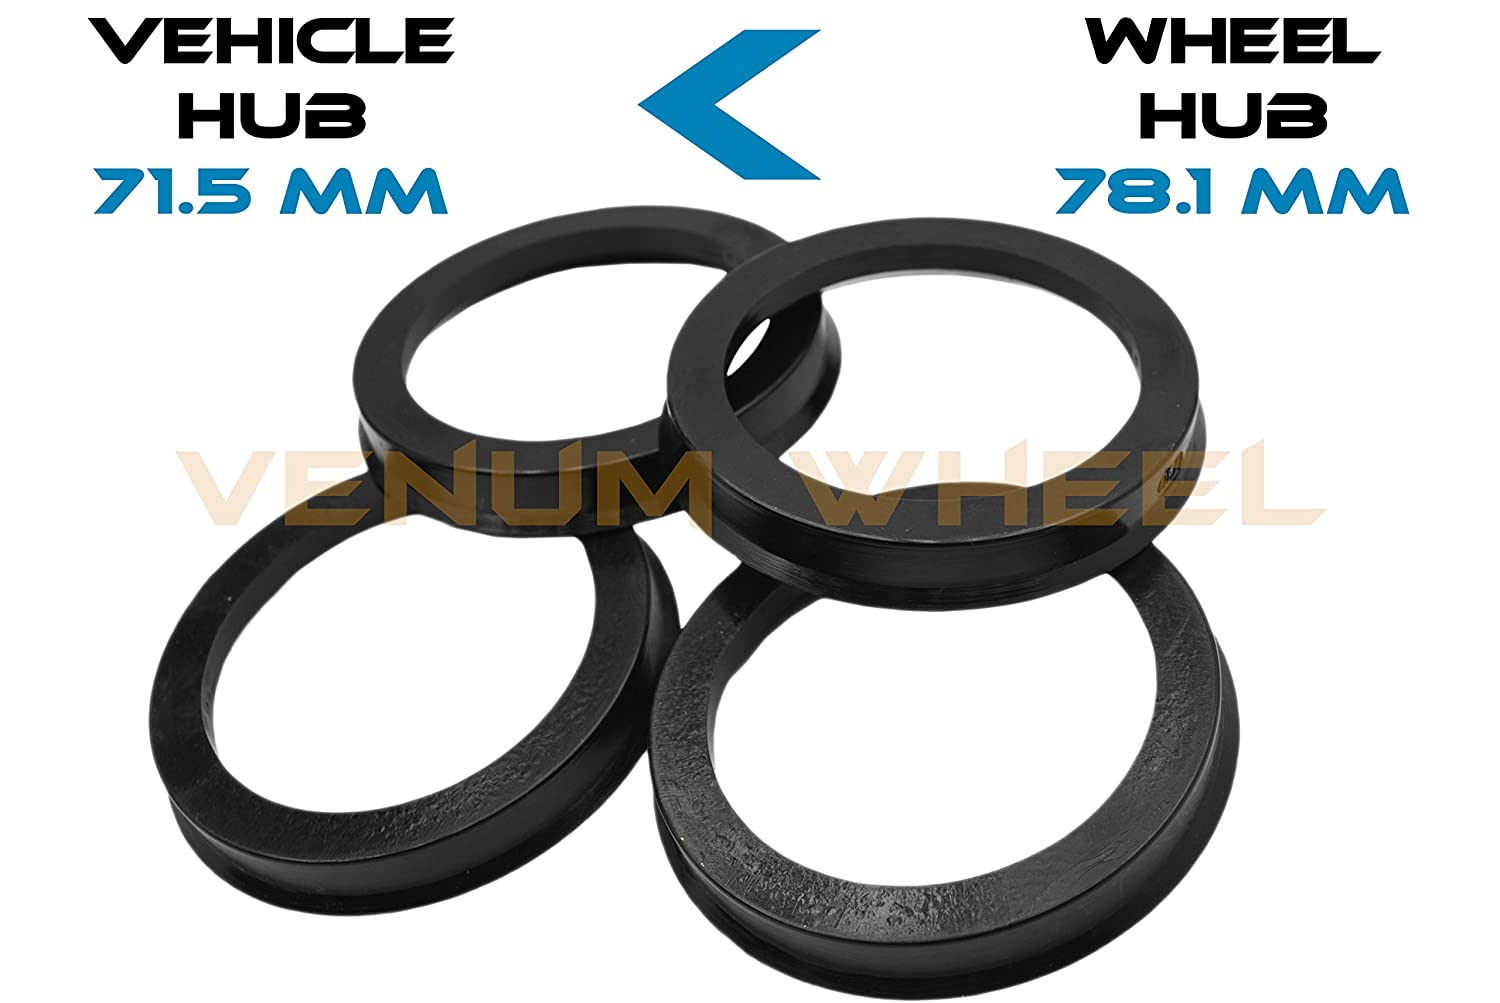 4 Hub Centric Rings 71.5 ID To 78.1 OD Black Polycarbonate Material ( Vehicle 71.5mm to Wheel 78.1mm) VENUM WHEEL ACCESSORIES